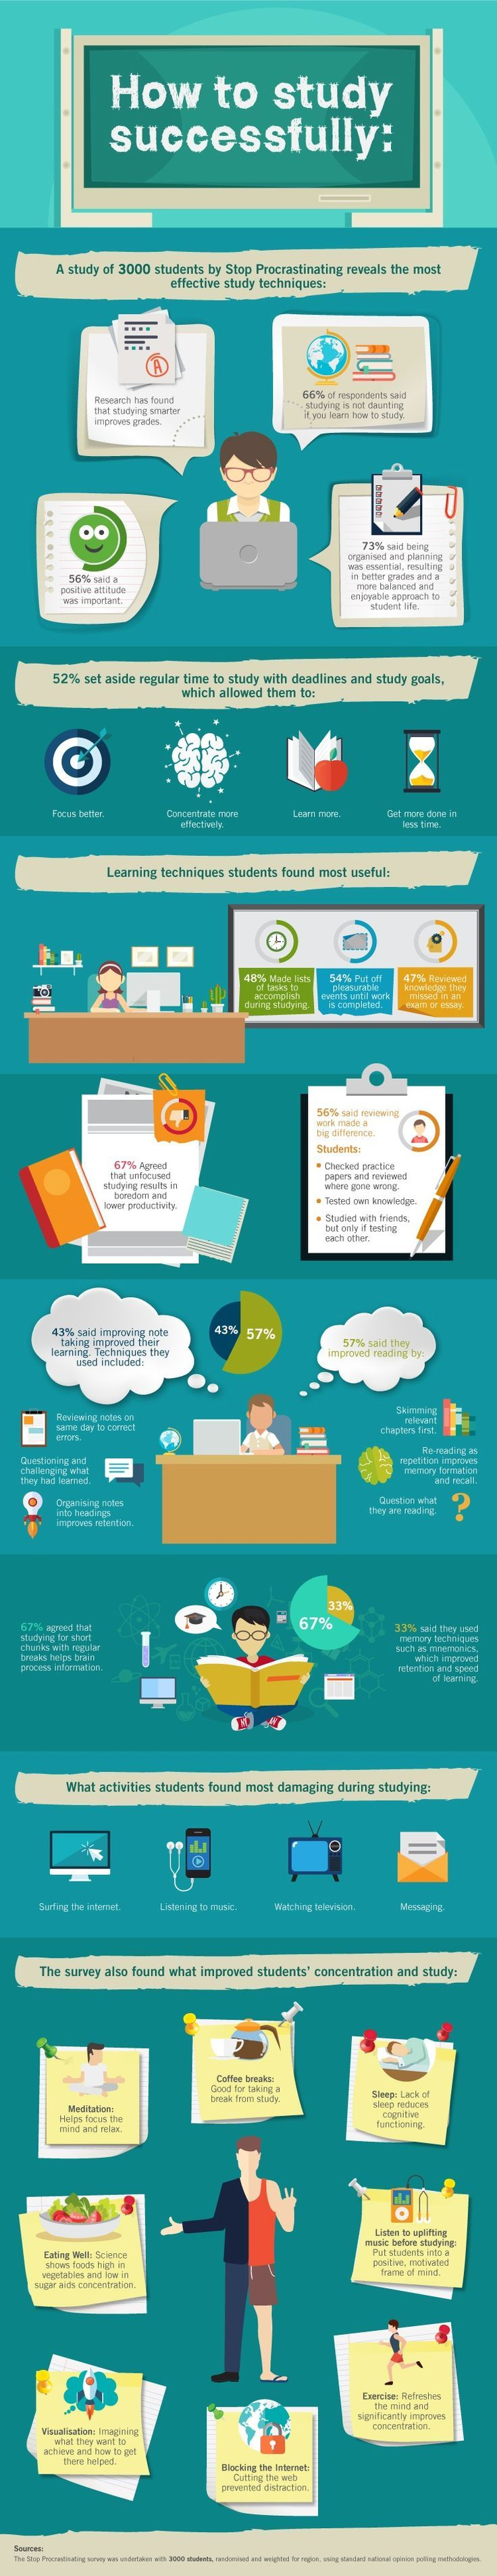 How to study: the most effective study techniques and tips proven to work #Infographic #HowTo